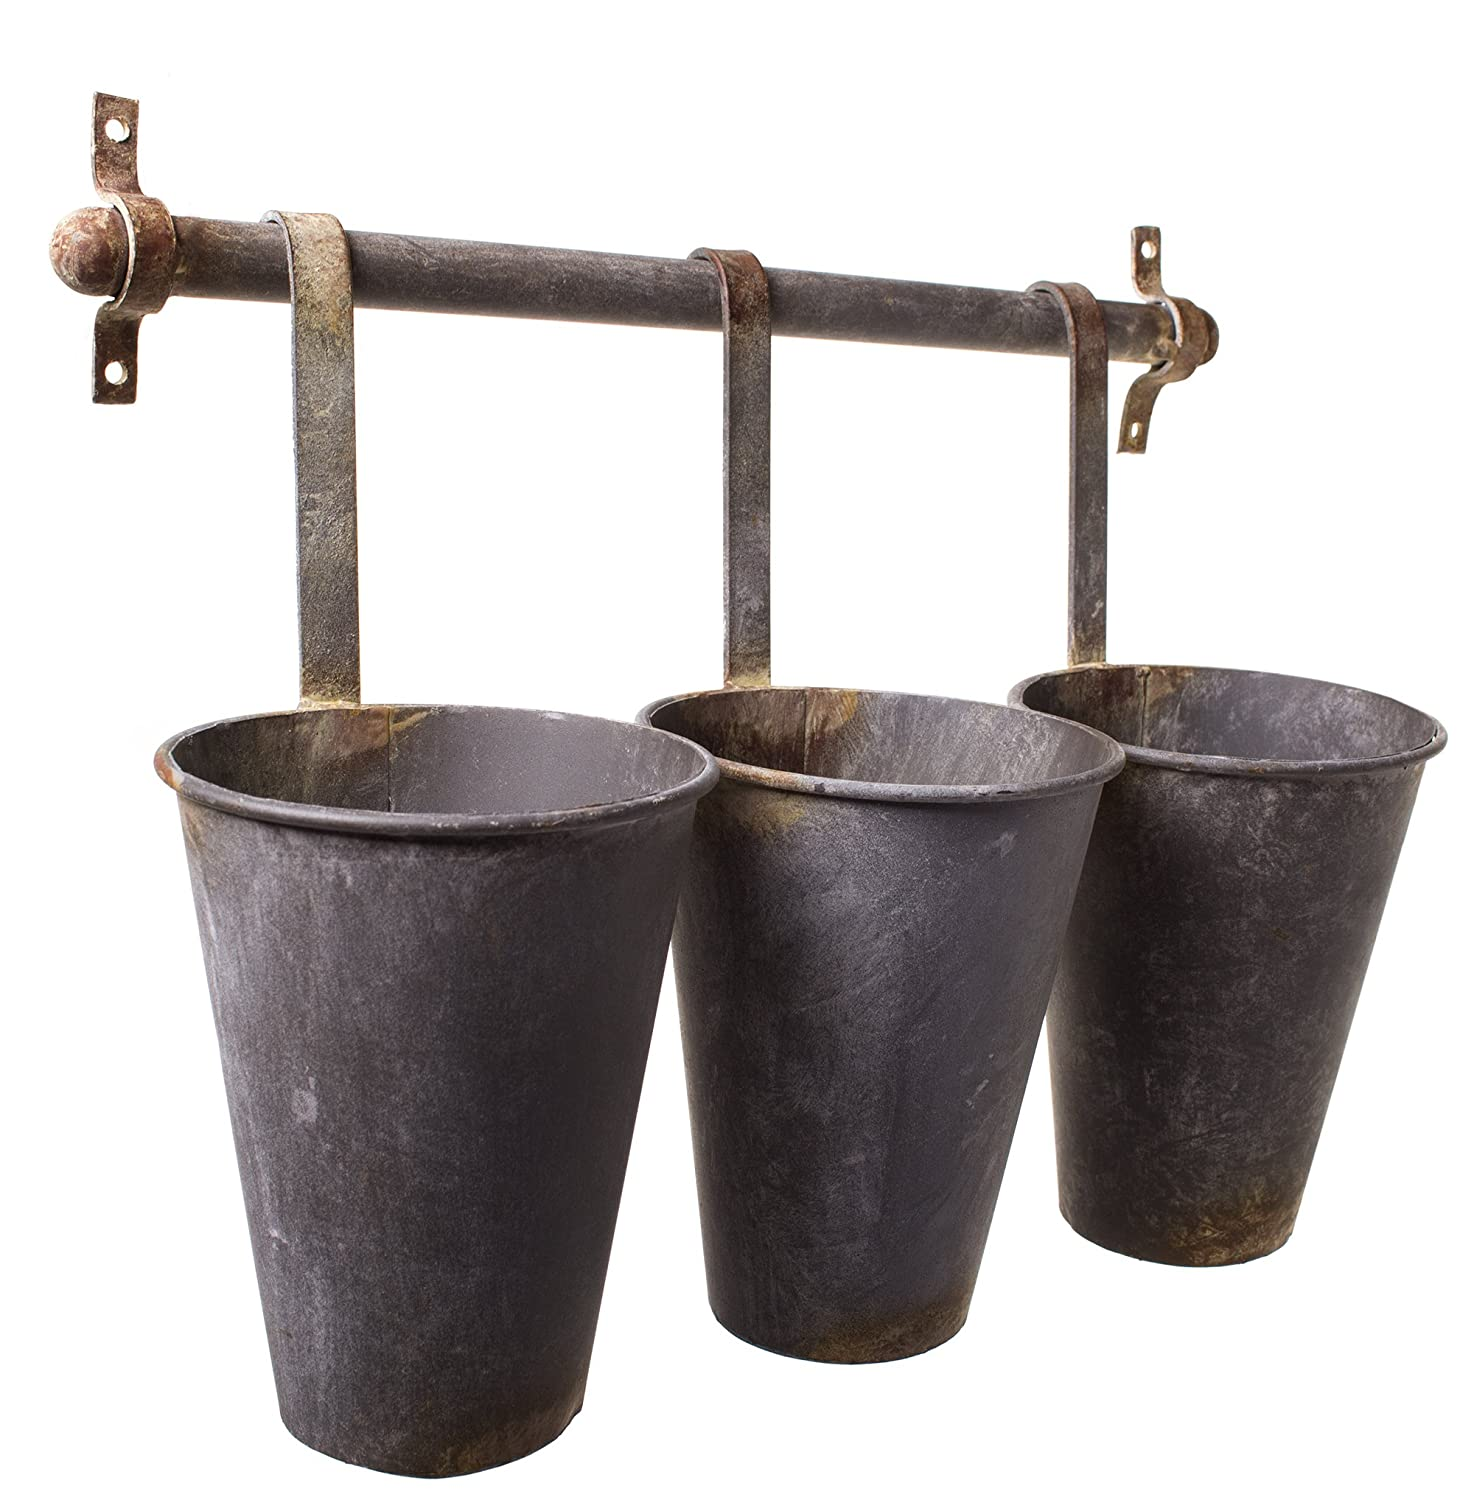 SSD5 Rustic Tin Pots Galvanized 3 Hanging Wall Flower Holder Planter Pot Vase Cup Baskets Set on a Rack Red Co